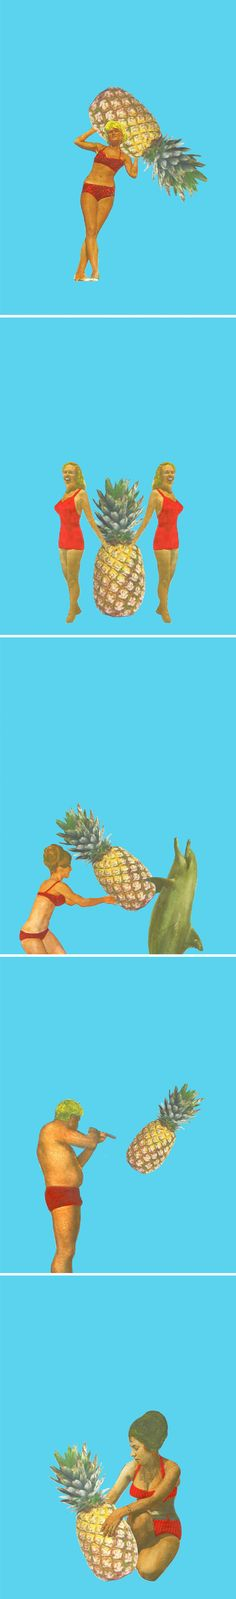 Do you love spray tans, red swimsuits, and giant pineapples? Well then have I got an artist for you! These mixed media collages are the work of Australian artist Maz Dixon. I wrote about her paintings